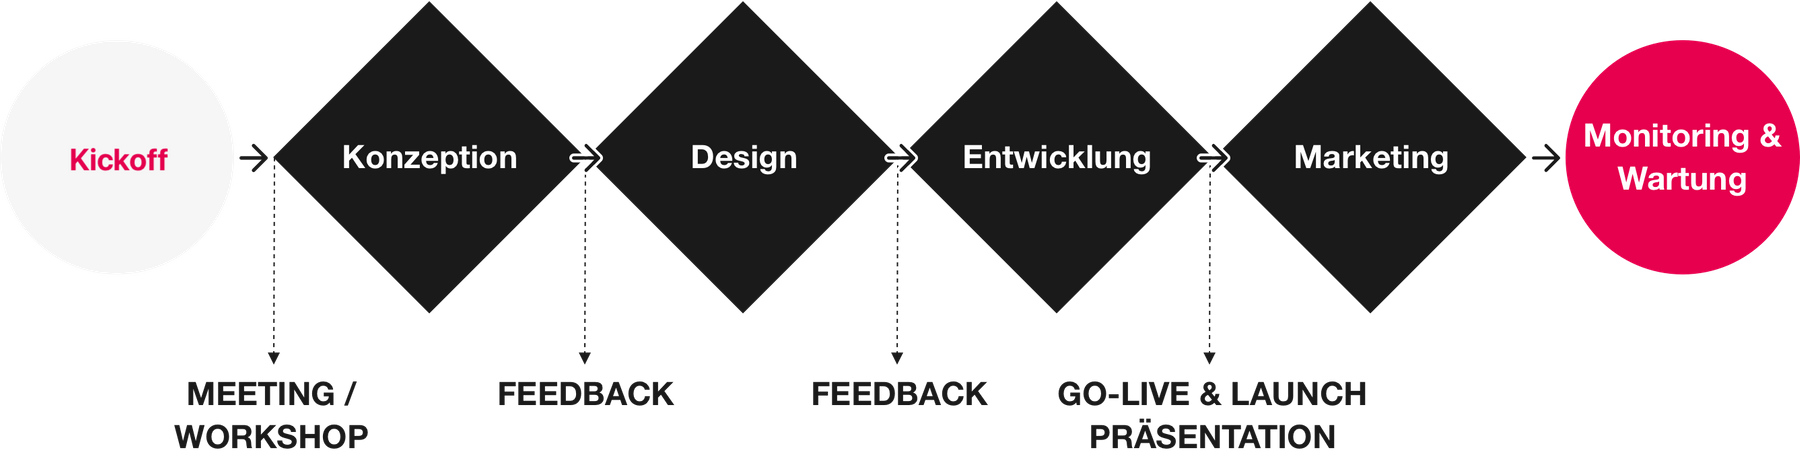 Design thinking process visualization